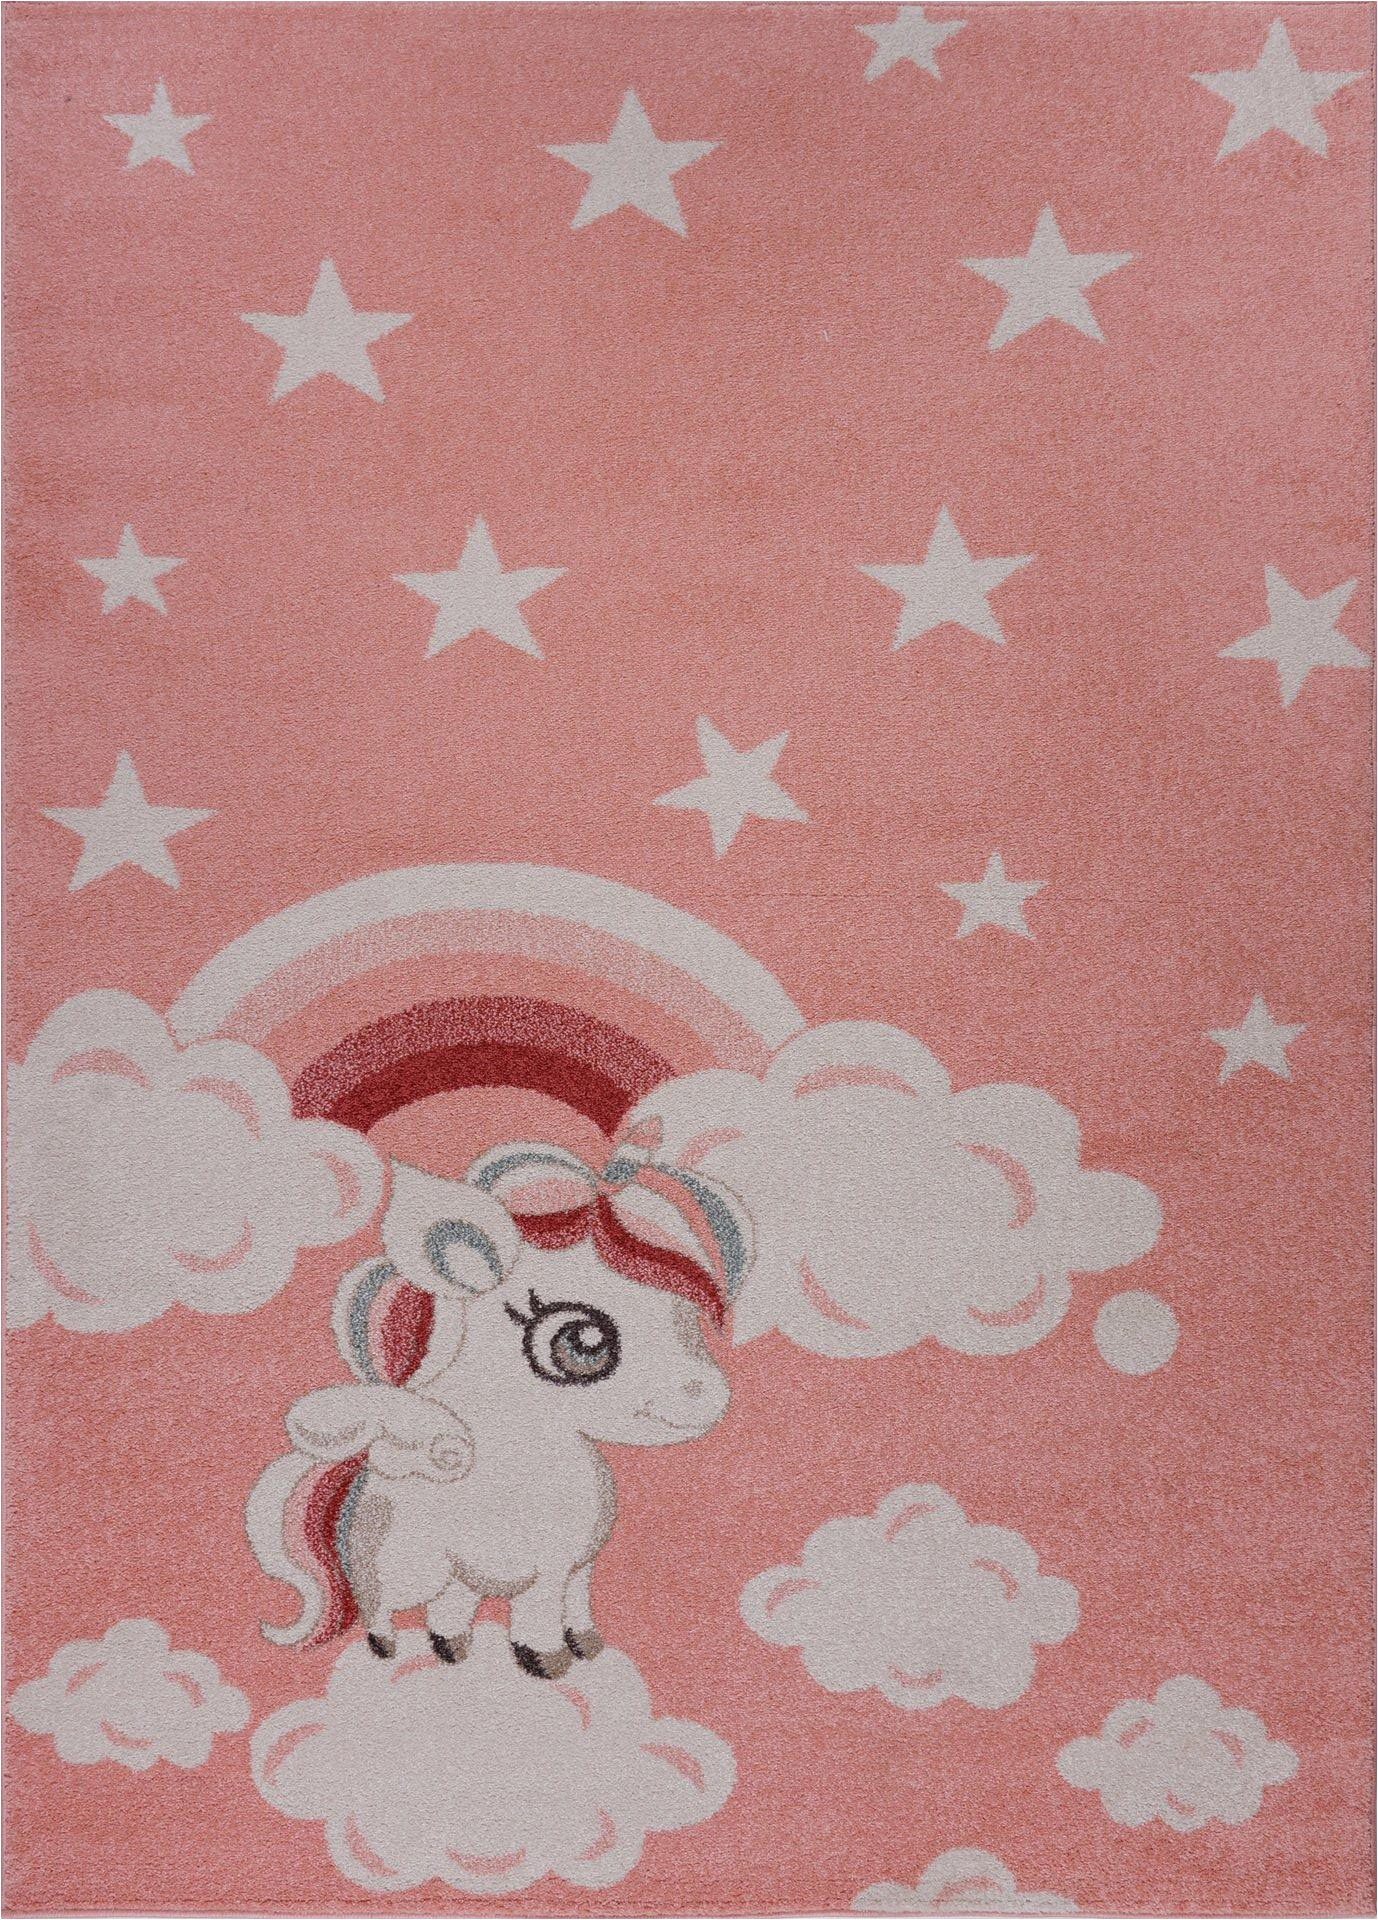 Area Rugs for Baby Boy Room Light Baby Pink soft Cute area Rug Carpet Mat with Unicorn Star Cloud Print for Kids Barbie Little Girl Boy Room Nursery Size 6'7″x9'2″ Feet 200—280